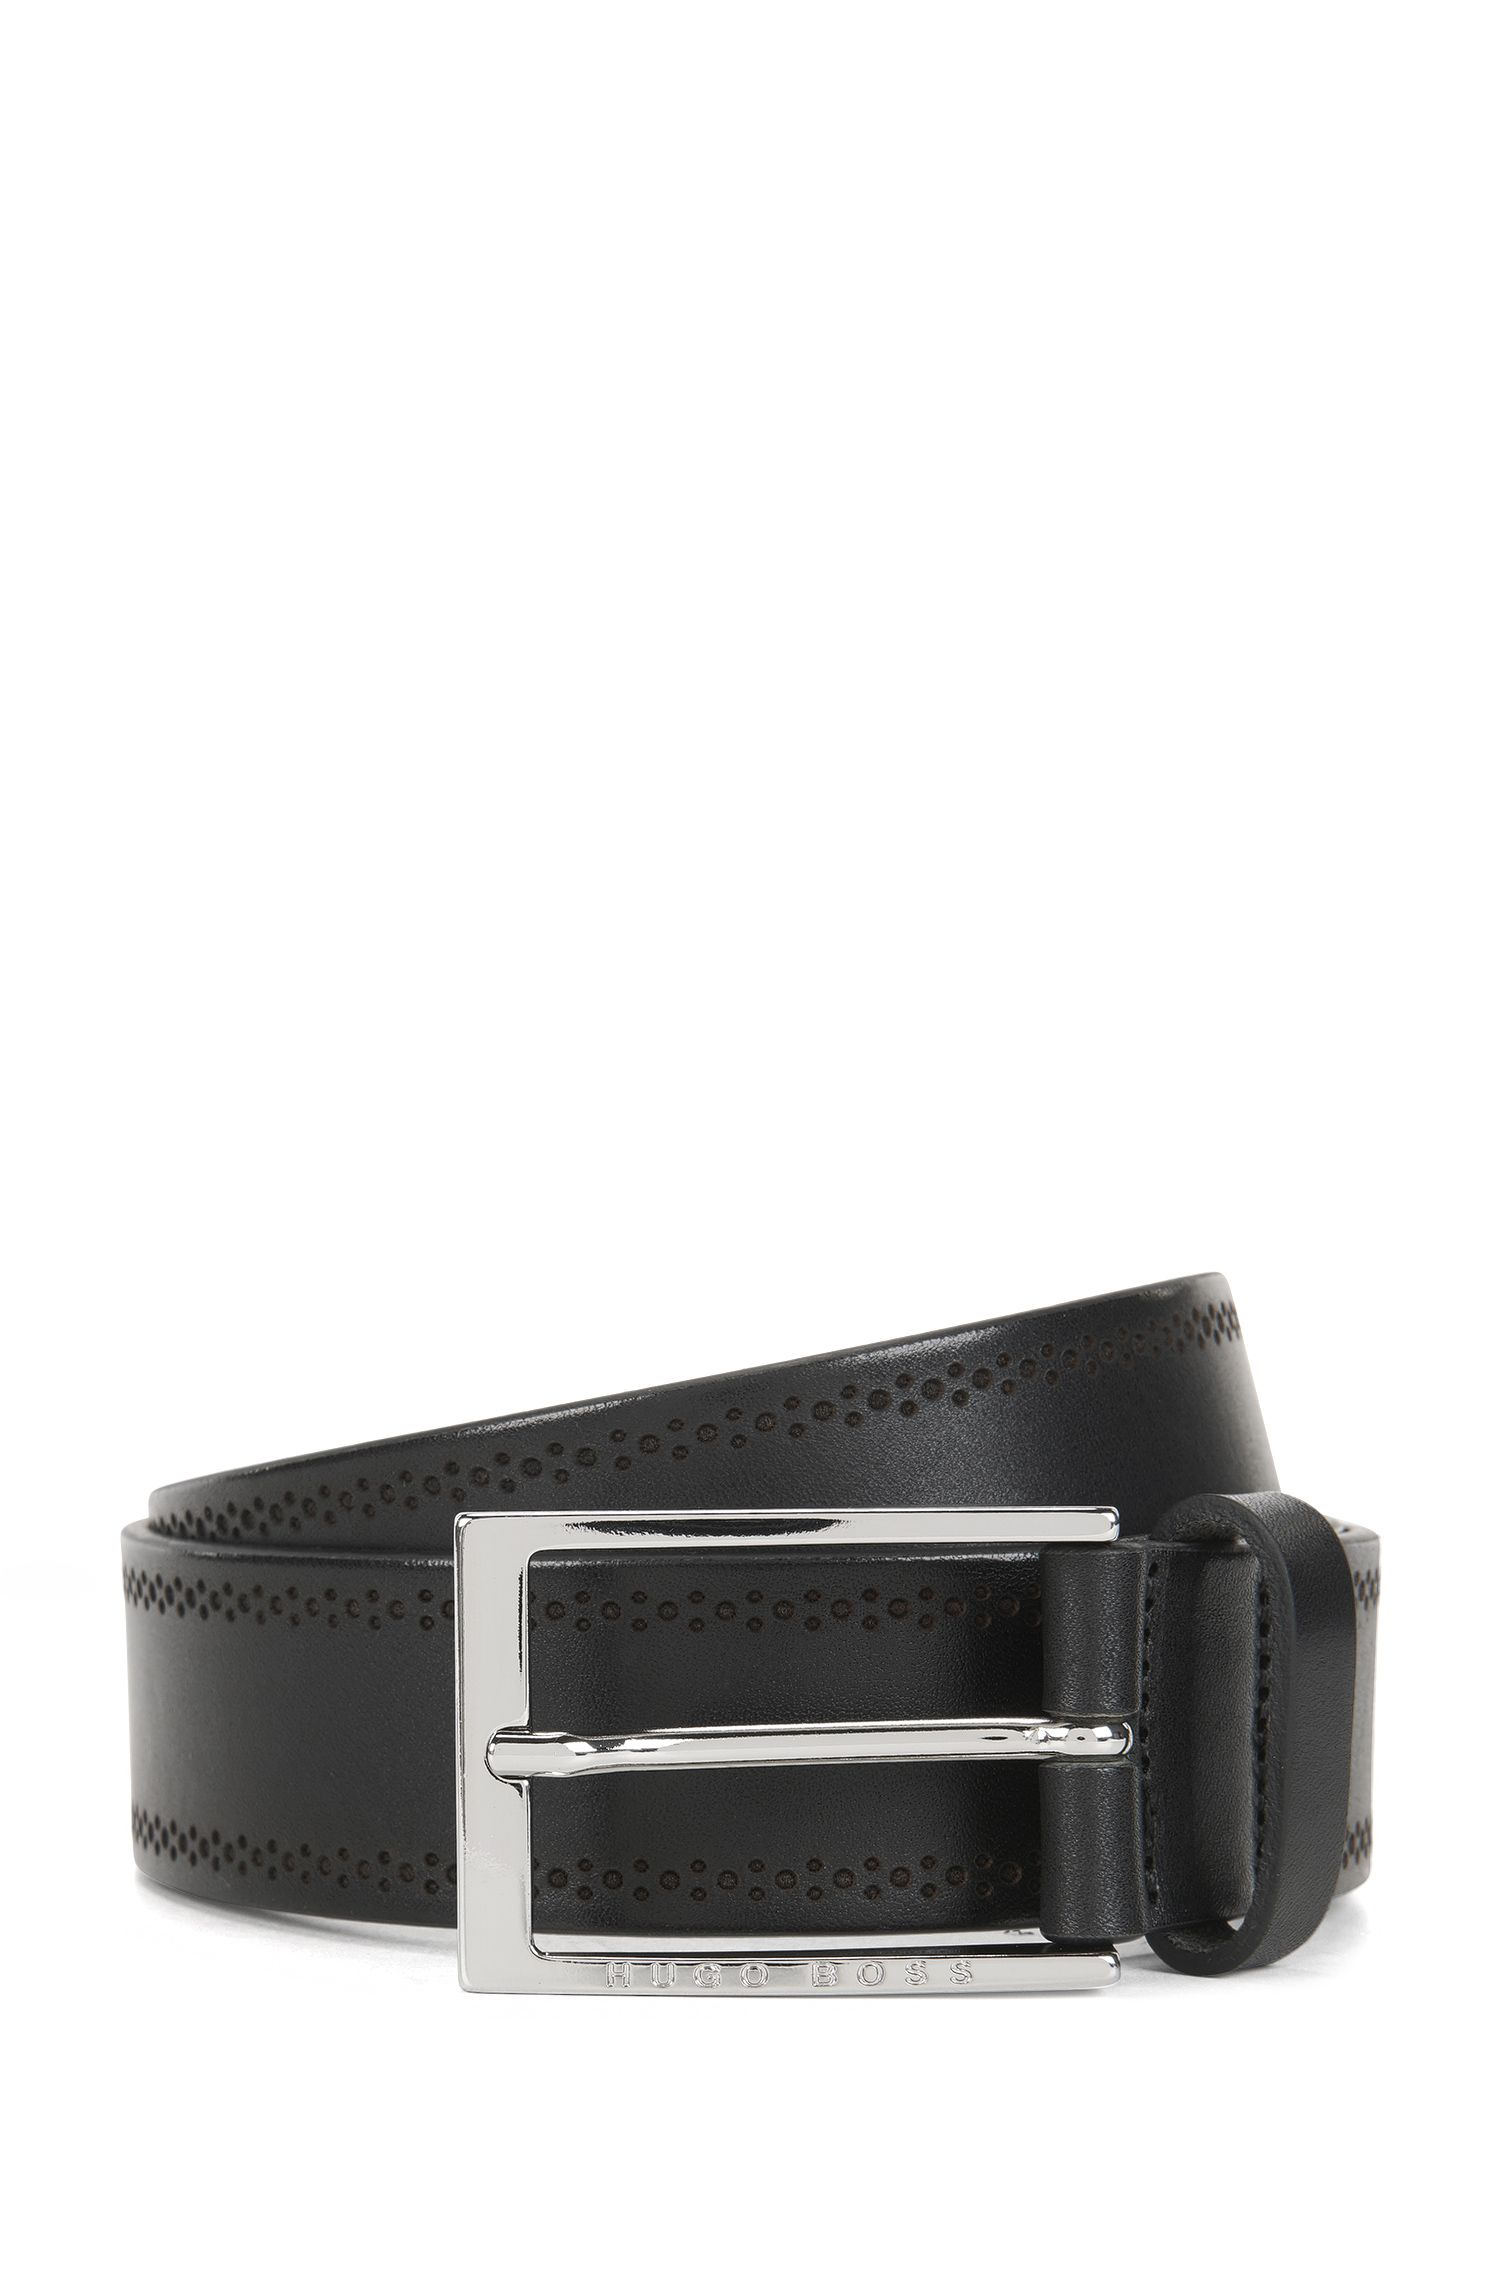 Brogue Leather Belt | Cludo Sz Ltbg